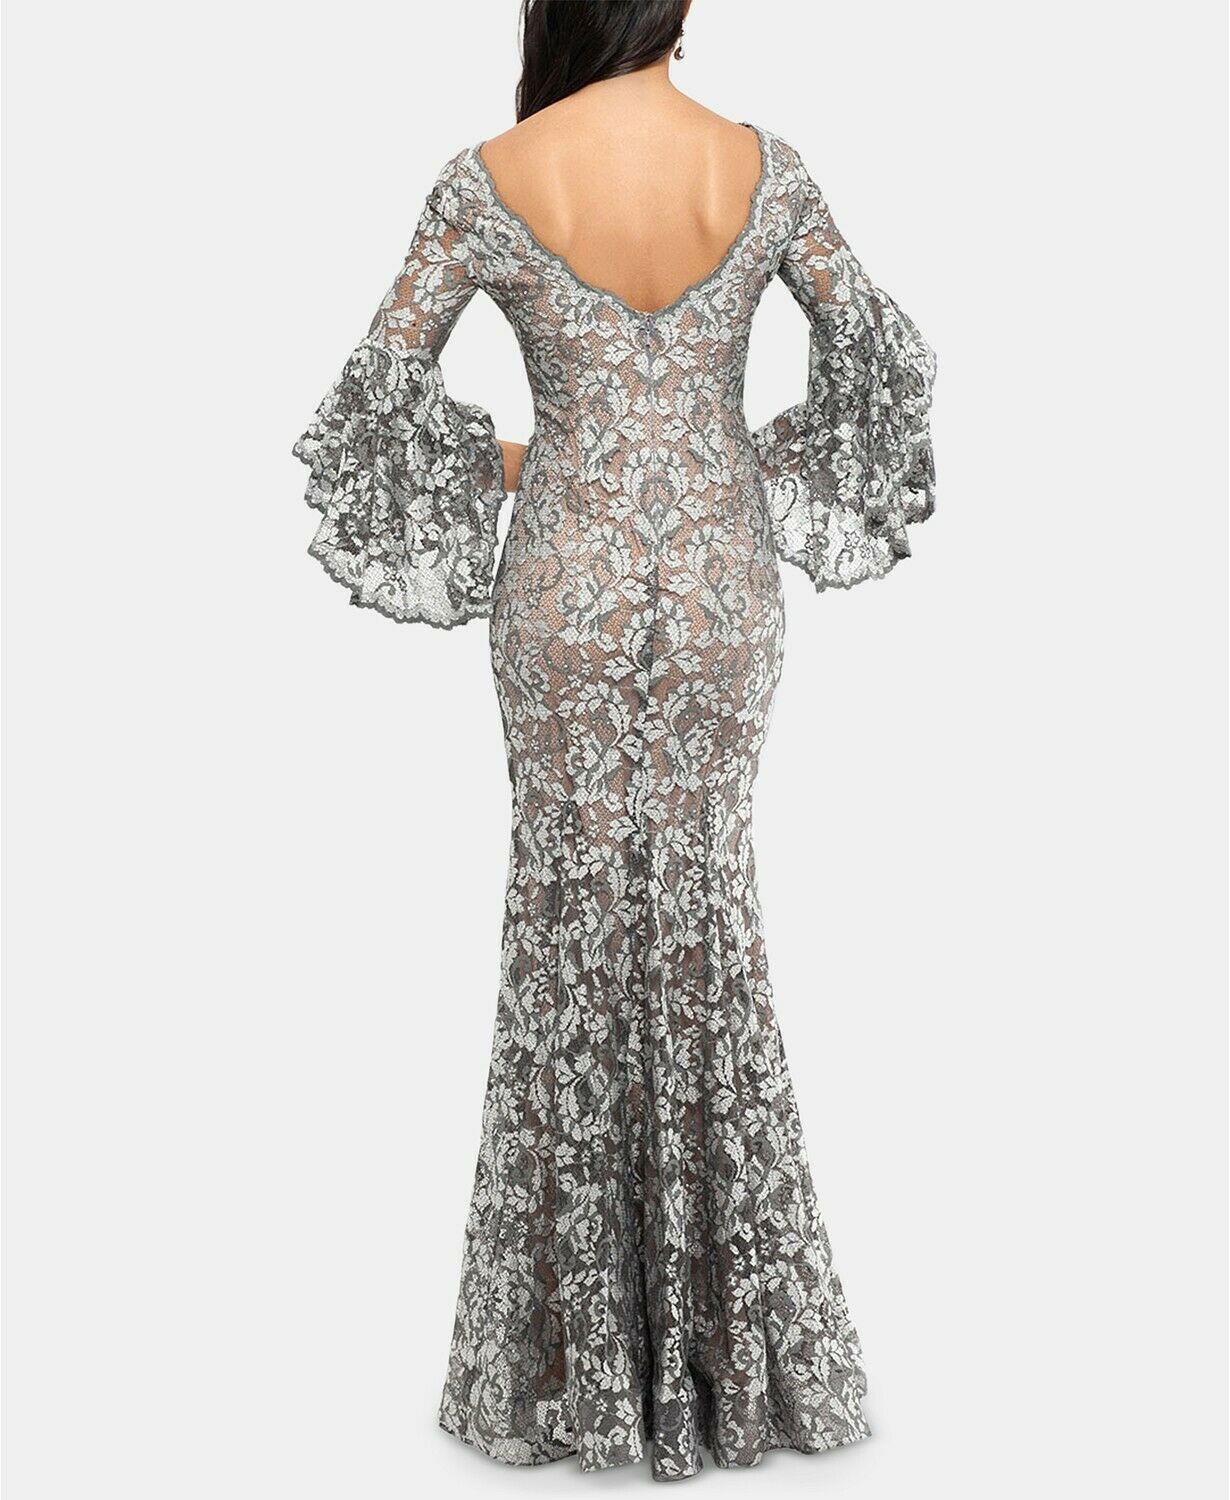 Betsy & Adam Embellished Lace Gown Grey/Nude Plus Size 14W $355 image 2